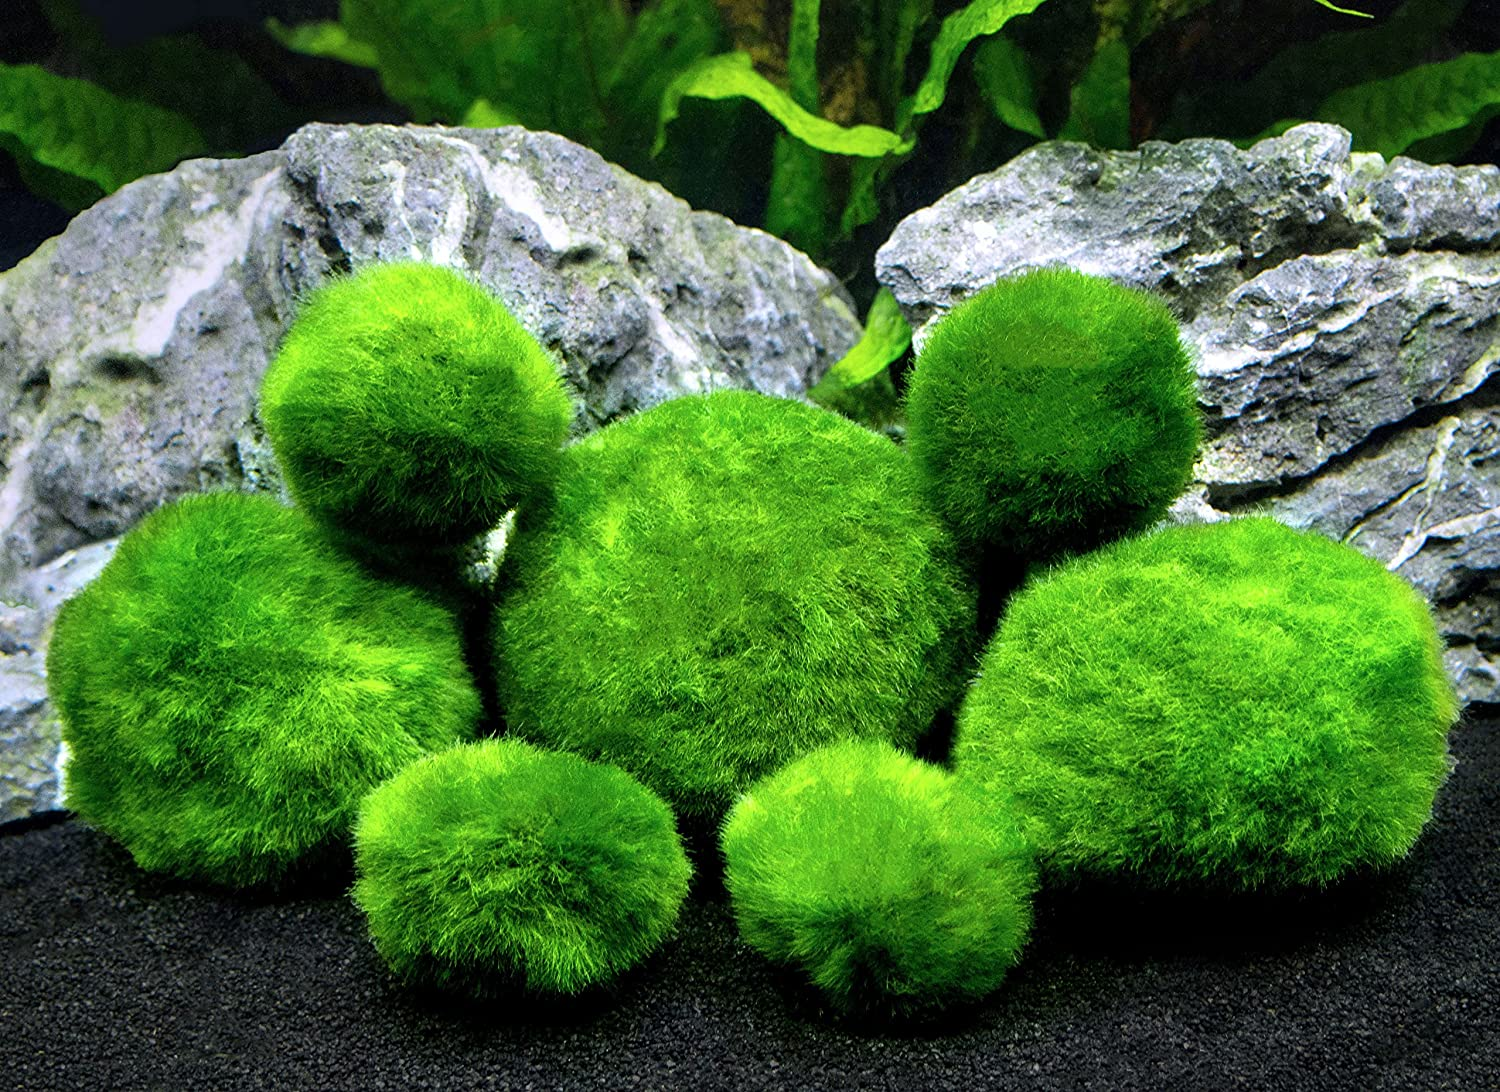 Amazon com: 6 Marimo Moss Ball Variety Pack - 4 Different